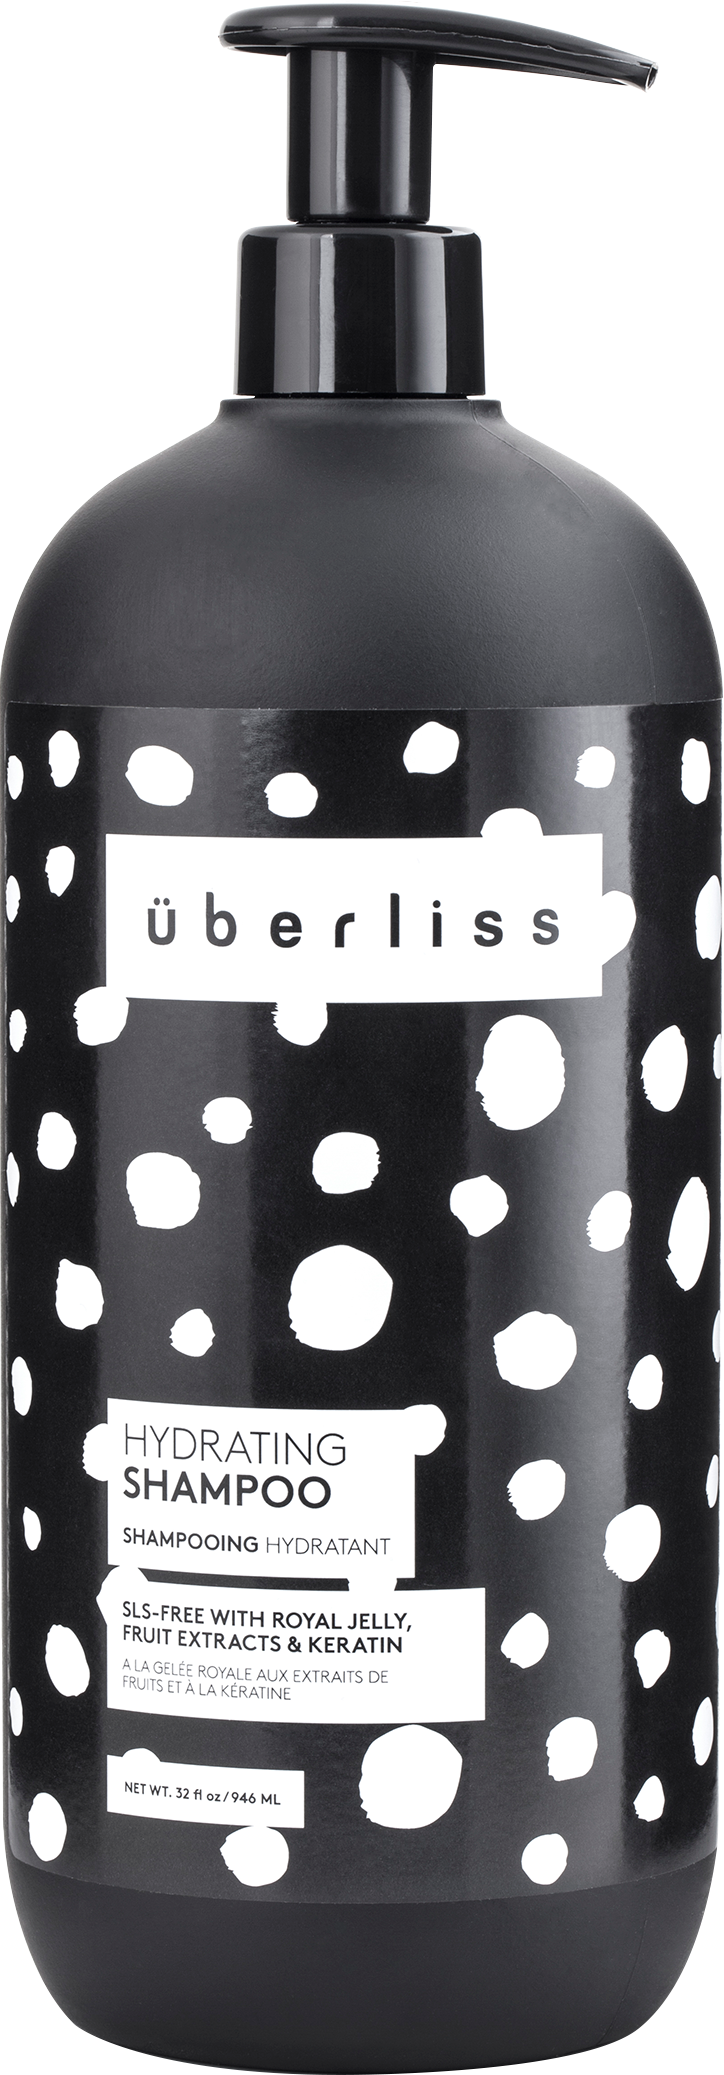 Uberliss-Pro-Hydrating-Shampoo-Packaging